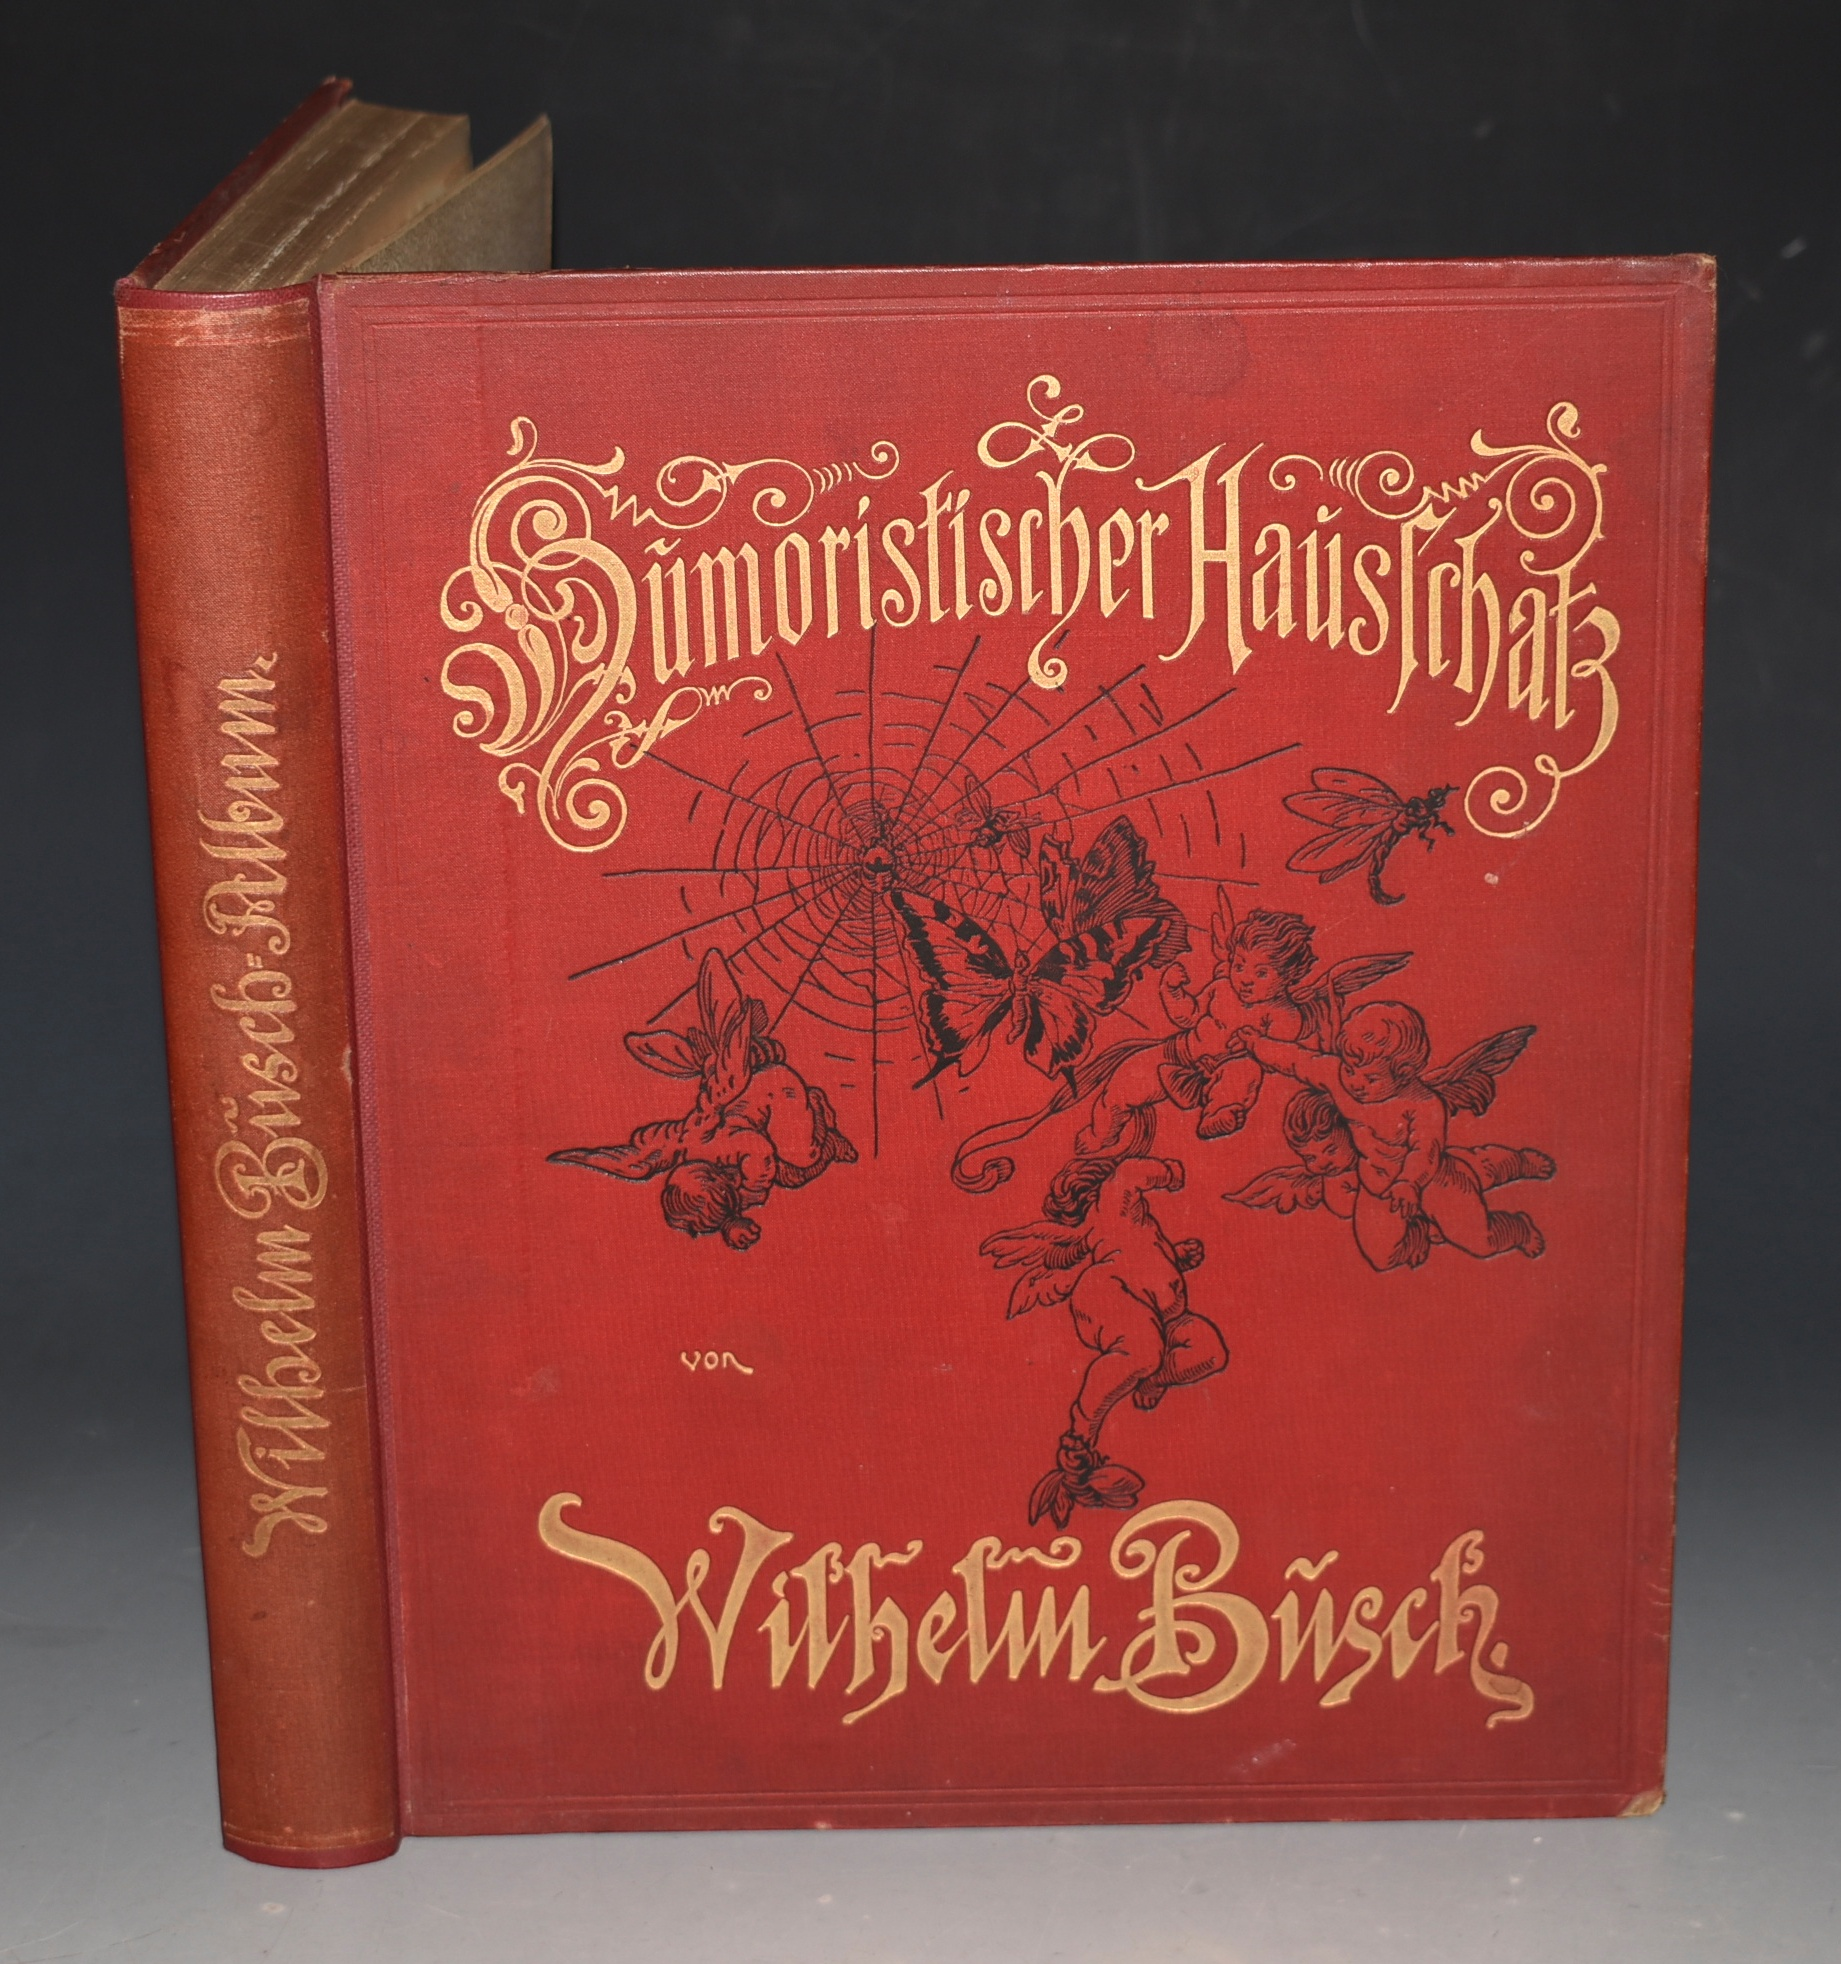 Image for Humoristischer Hausschatz. Sammlung der beliebtesten Schriften. Mit 1500 Bildern. (Humorous Treasury. Collection of the best writings, with 1500 pictures by Wilhelm Busch. With the portrait of the author. Fourth edition.)